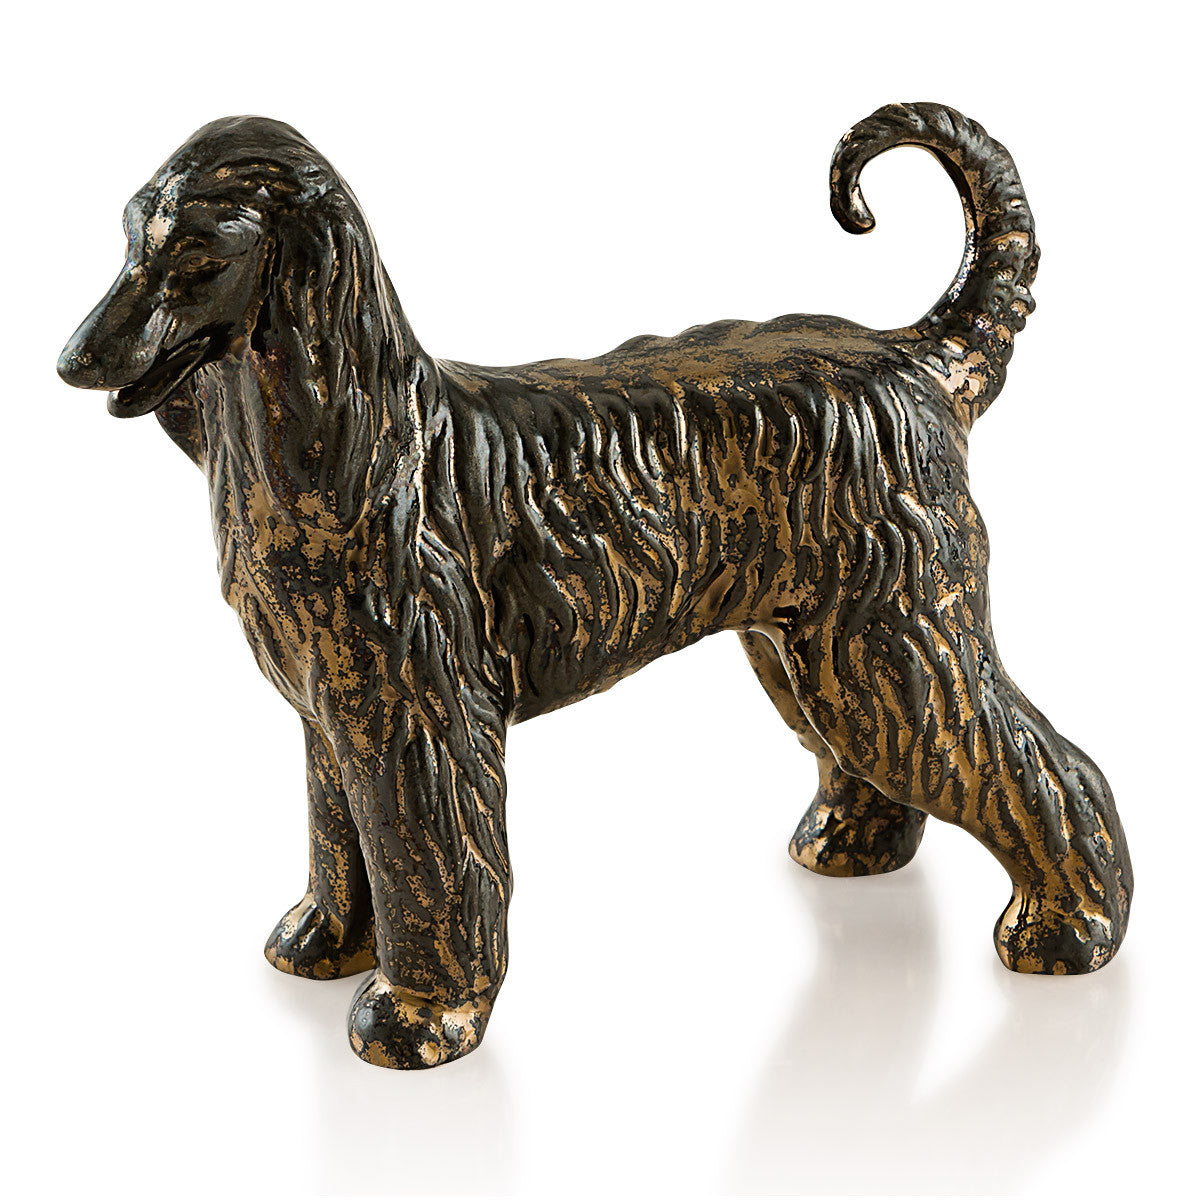 Ceramic mini afghan hound in burnished bronze finish